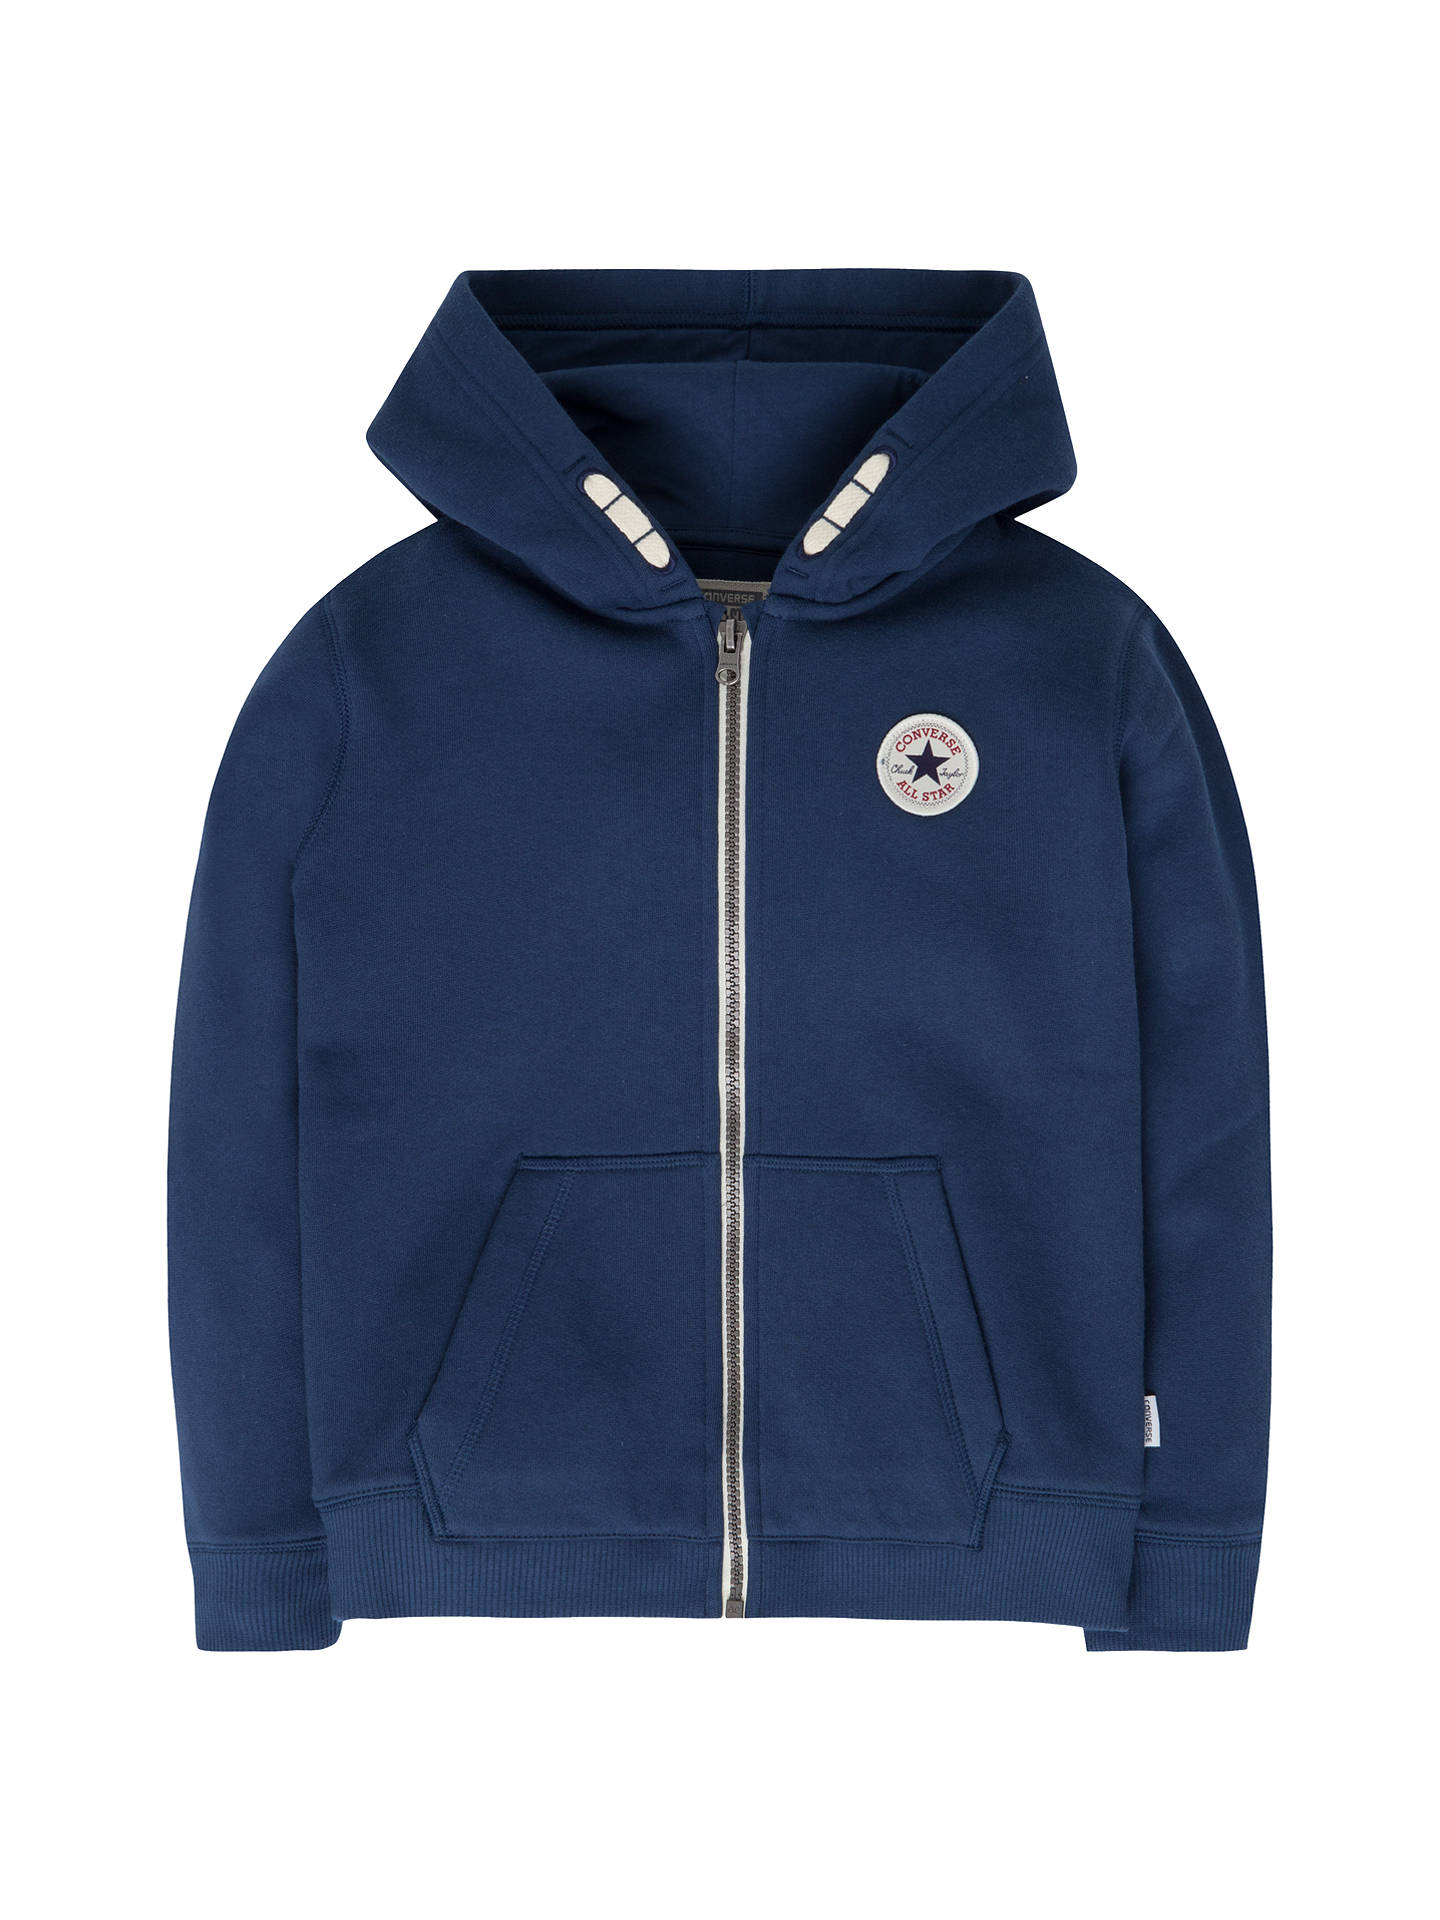 150a0d8ab7c4 Converse Children s All Star Core Zip Hoodie at John Lewis   Partners